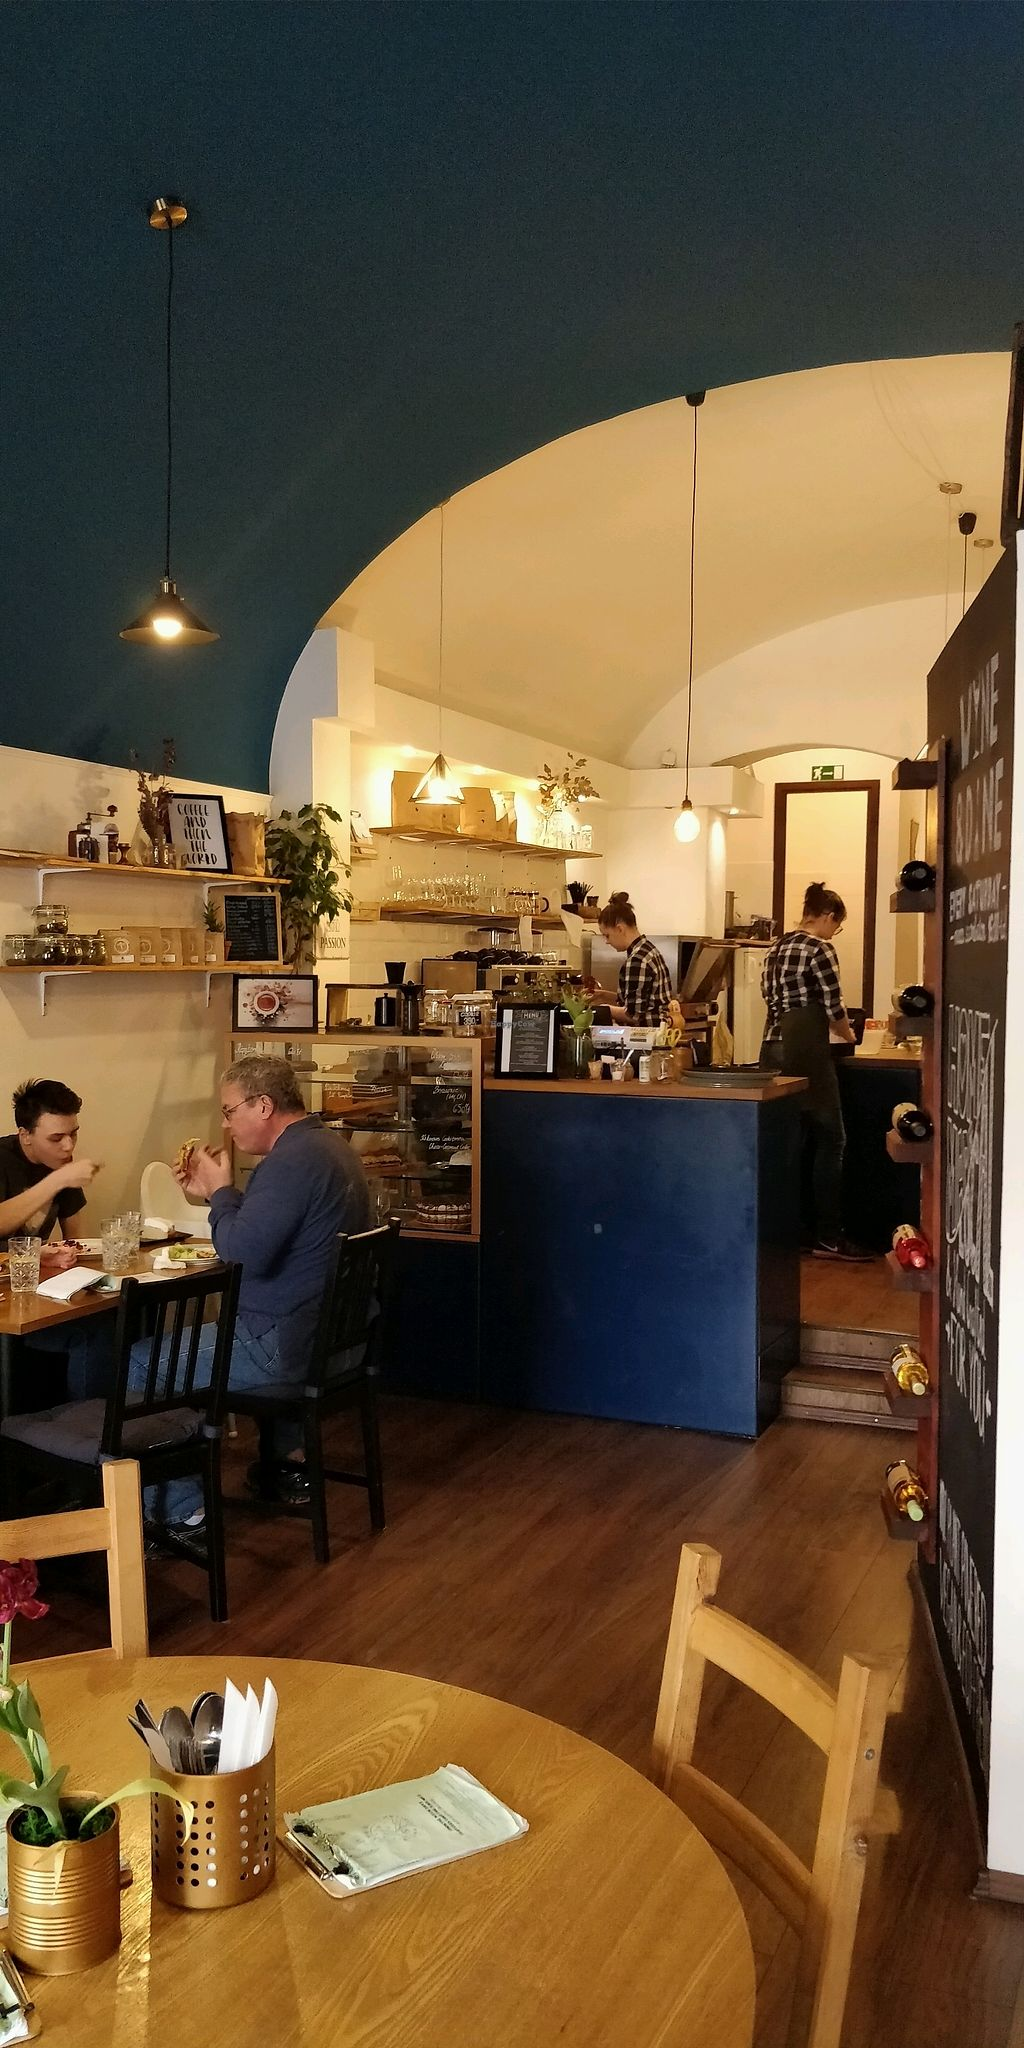 """Photo of LYR Speciality Coffee and Food  by <a href=""""/members/profile/hungrycow108"""">hungrycow108</a> <br/>Interior <br/> March 31, 2018  - <a href='/contact/abuse/image/92536/378679'>Report</a>"""